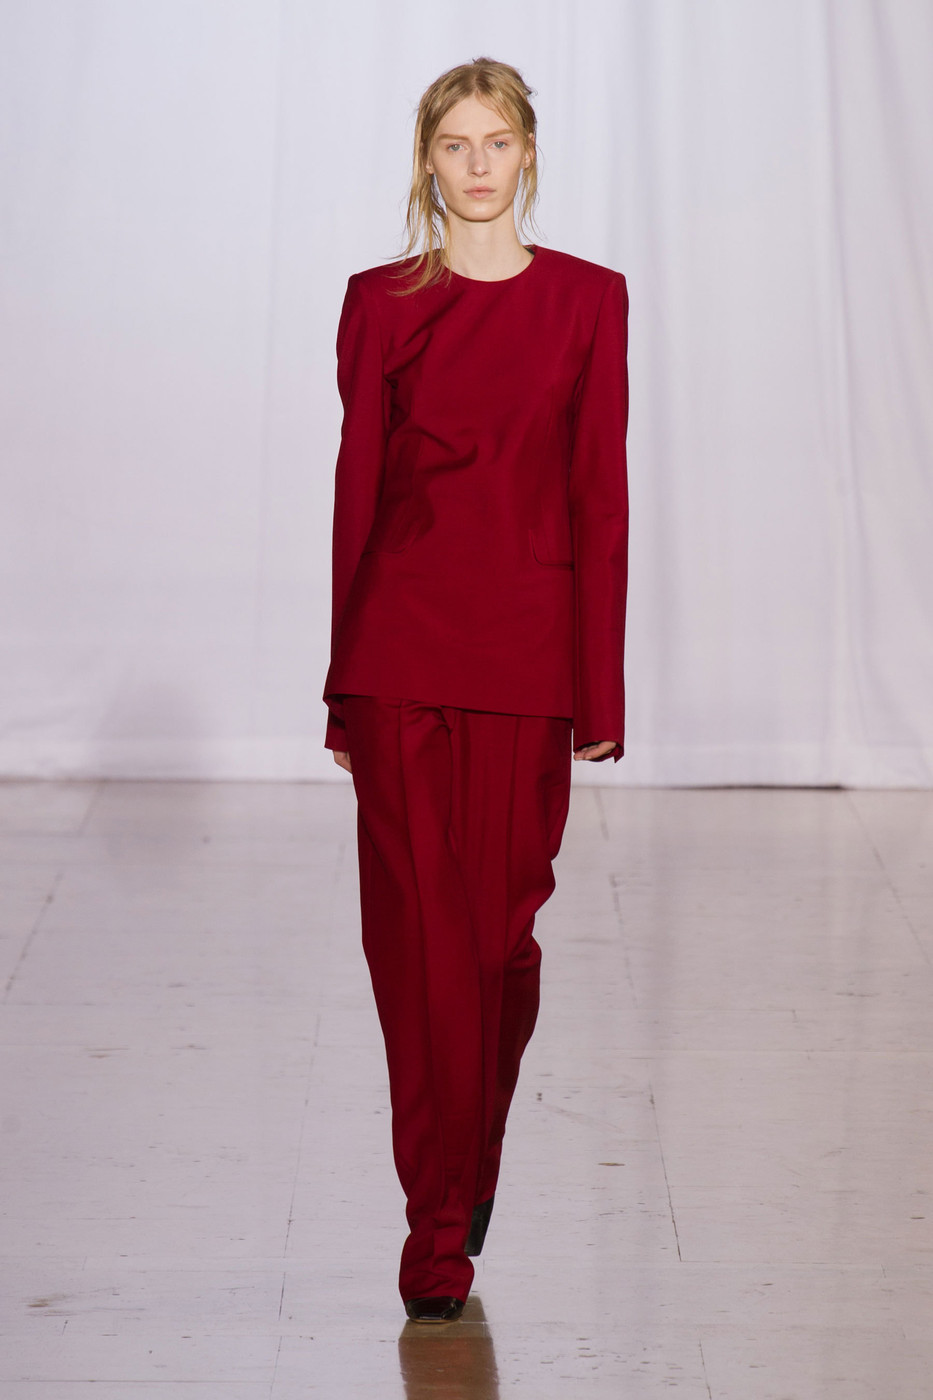 Maison martin margiela spring 2014 runway pictures livingly for Maison martin margiela paris